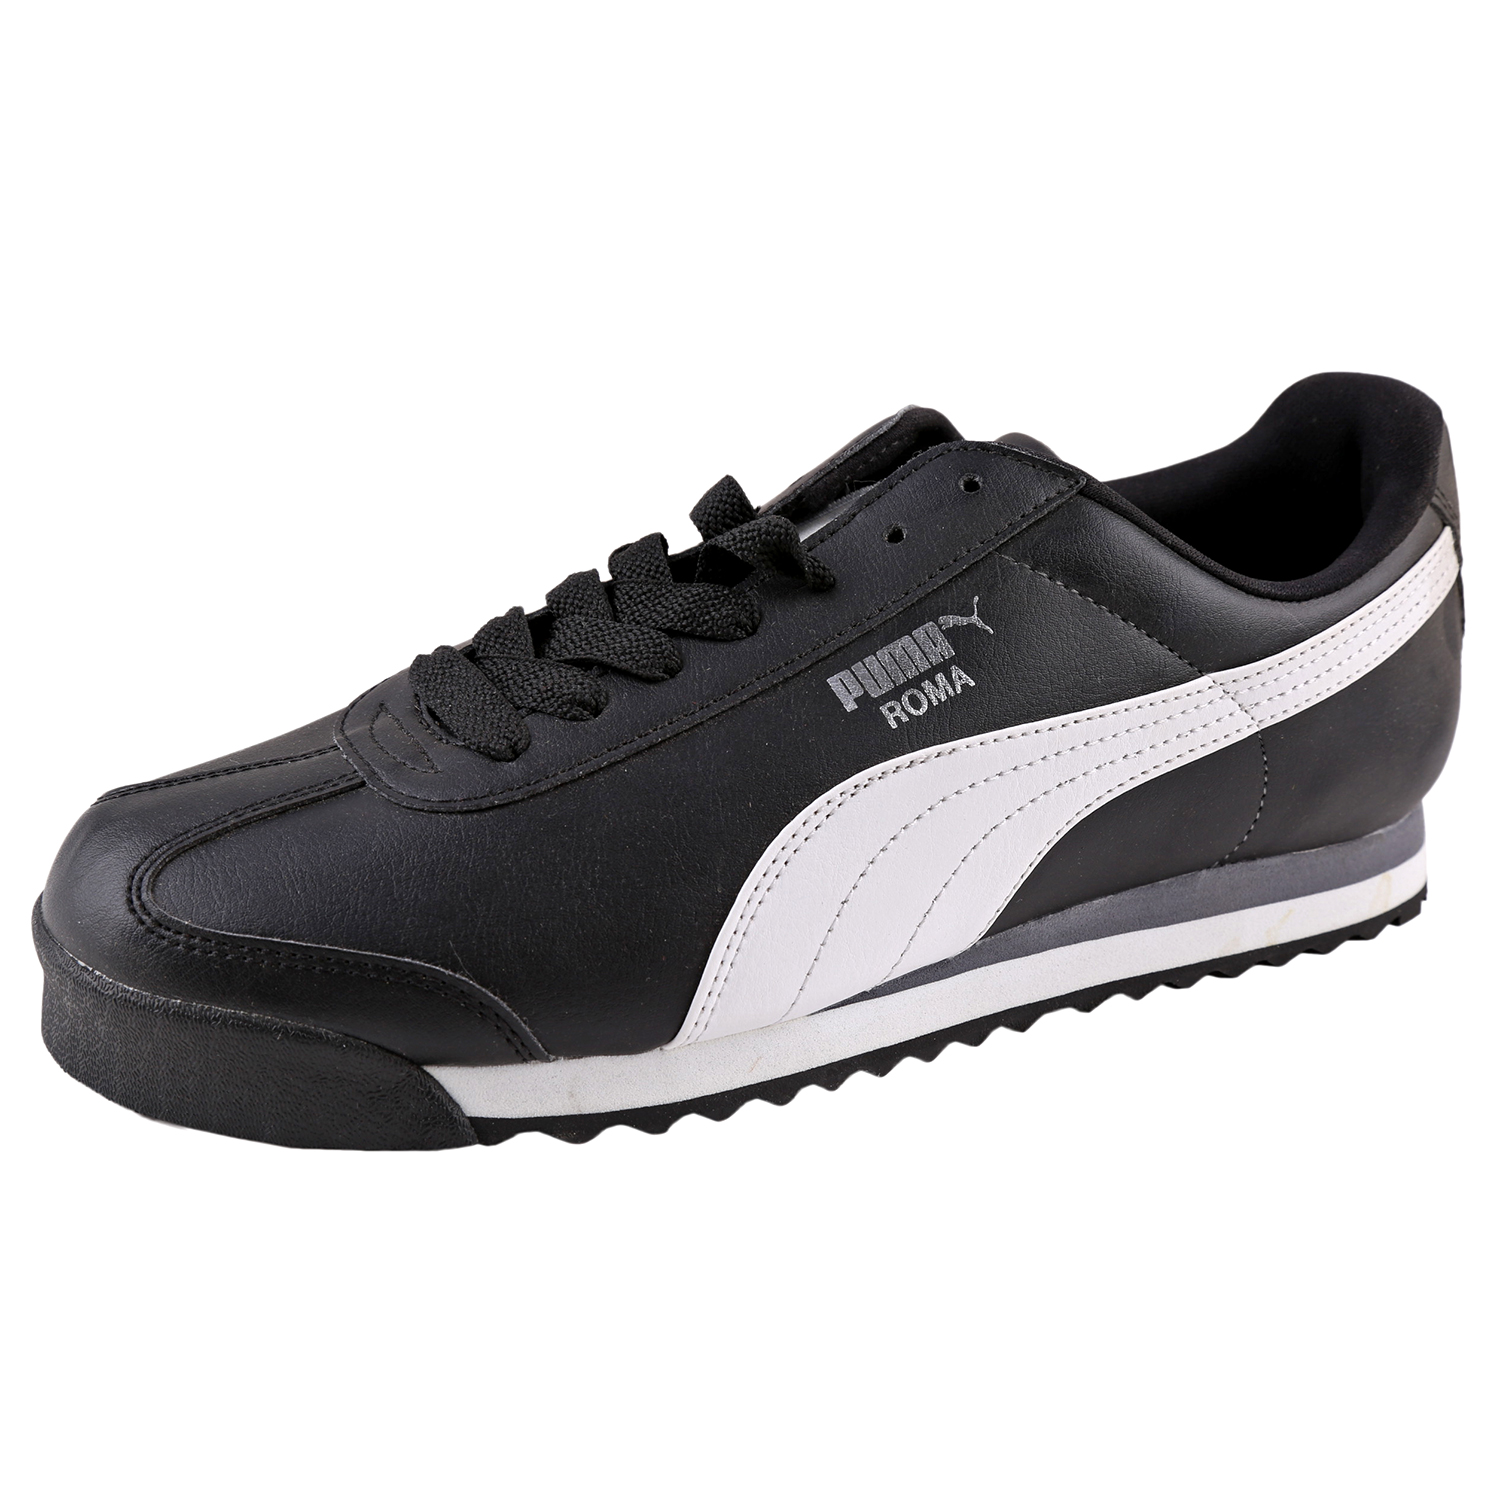 Details about Puma Men s Roma Basic Leather Sneaker Shoes 353572 Black White 0e7f1cbab